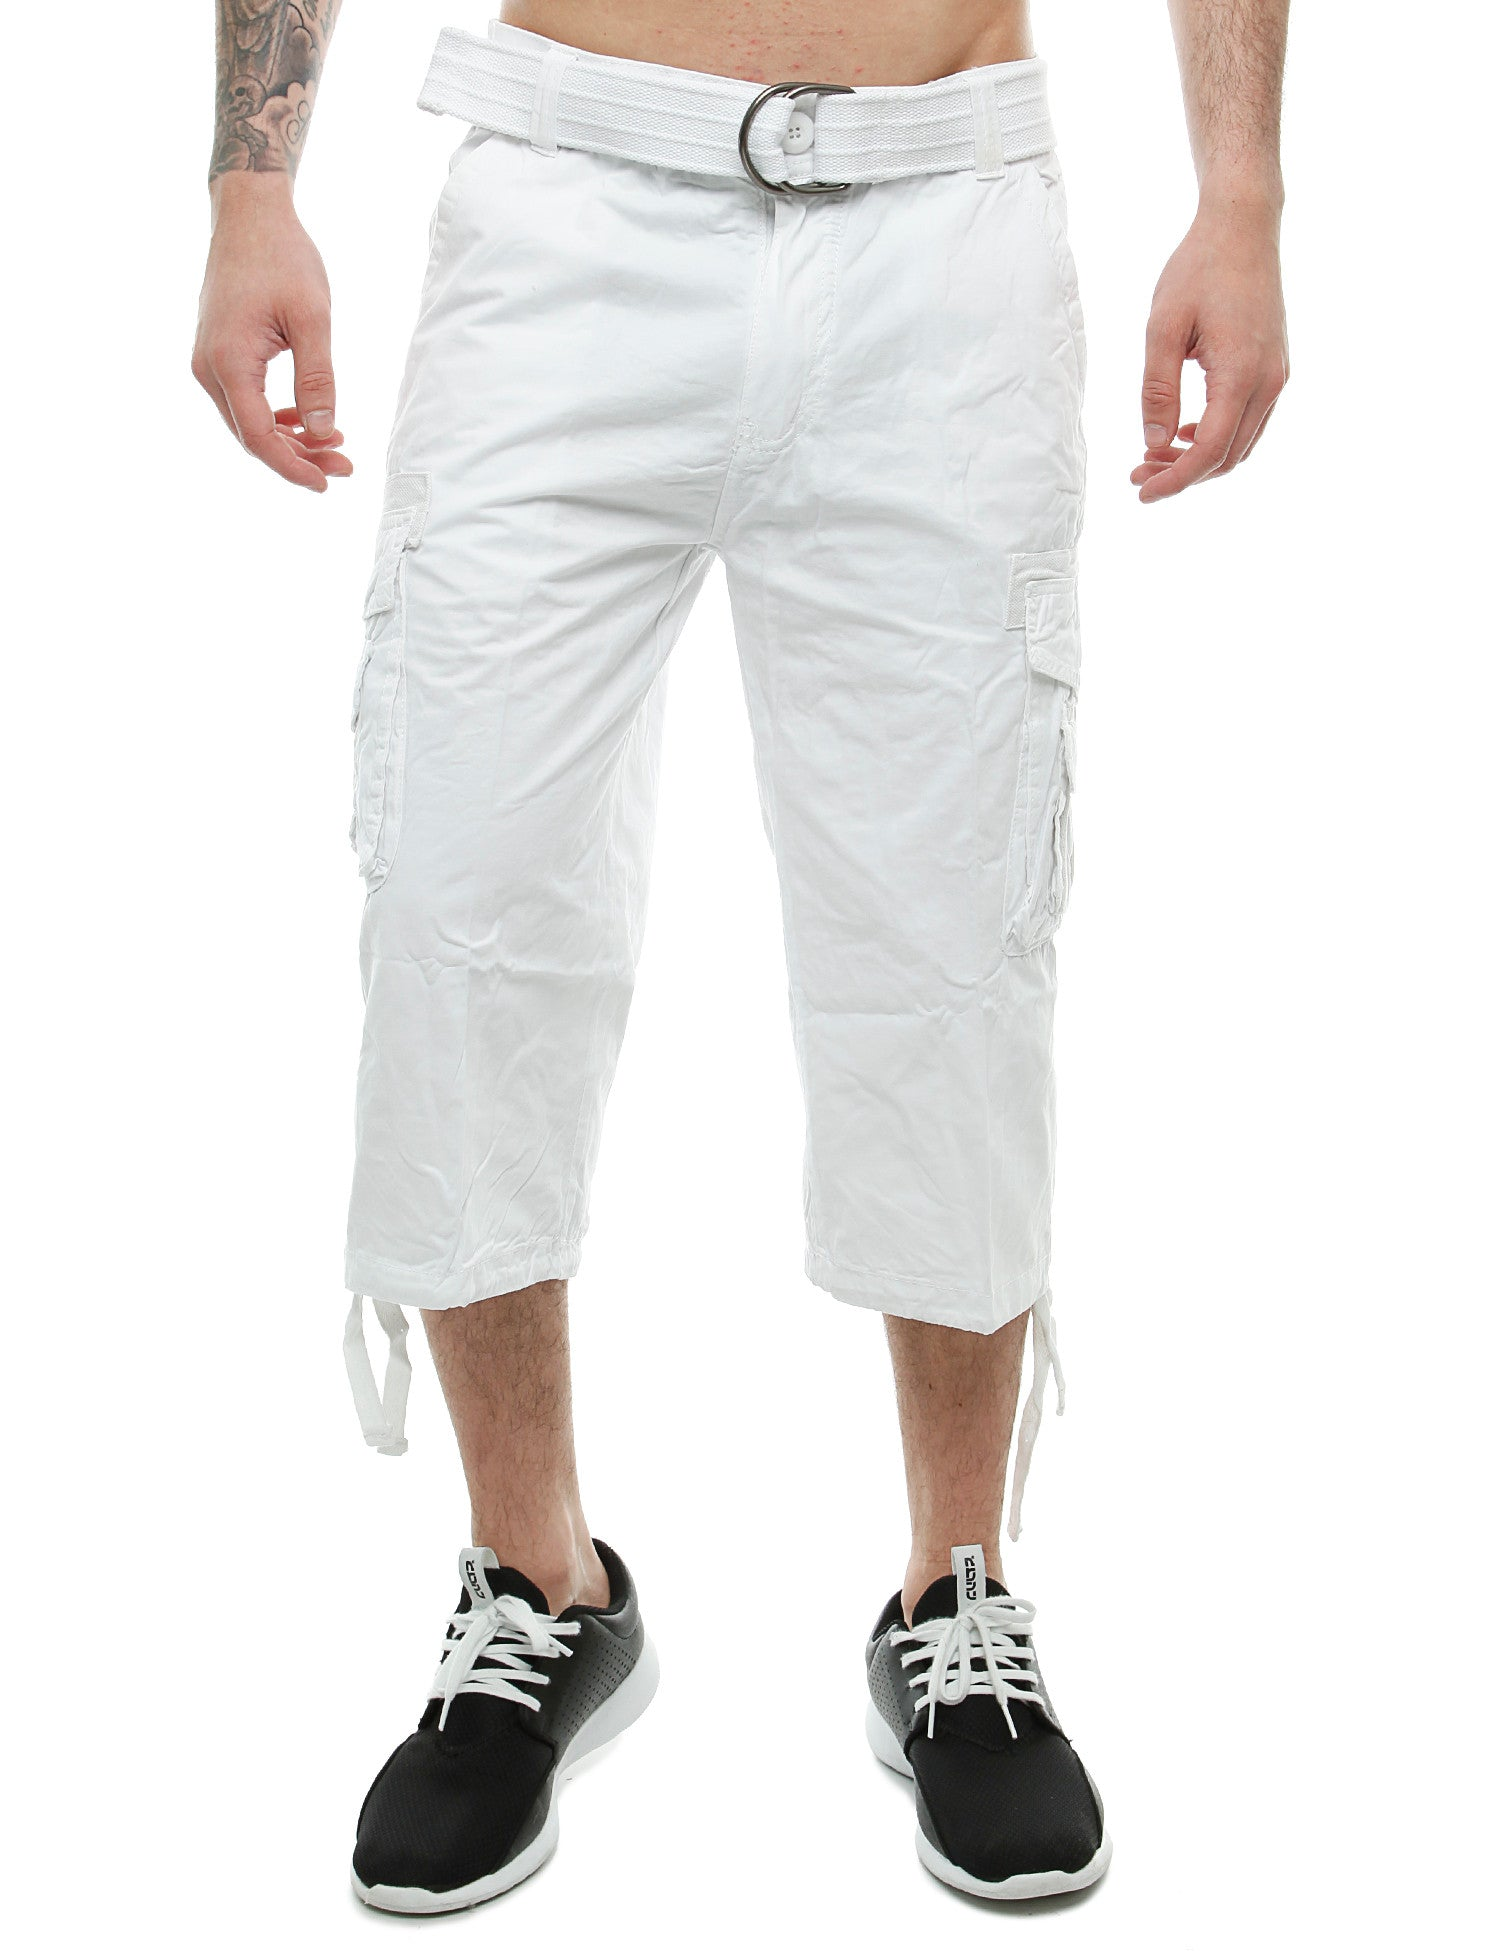 Korex Shorts CBC731  White